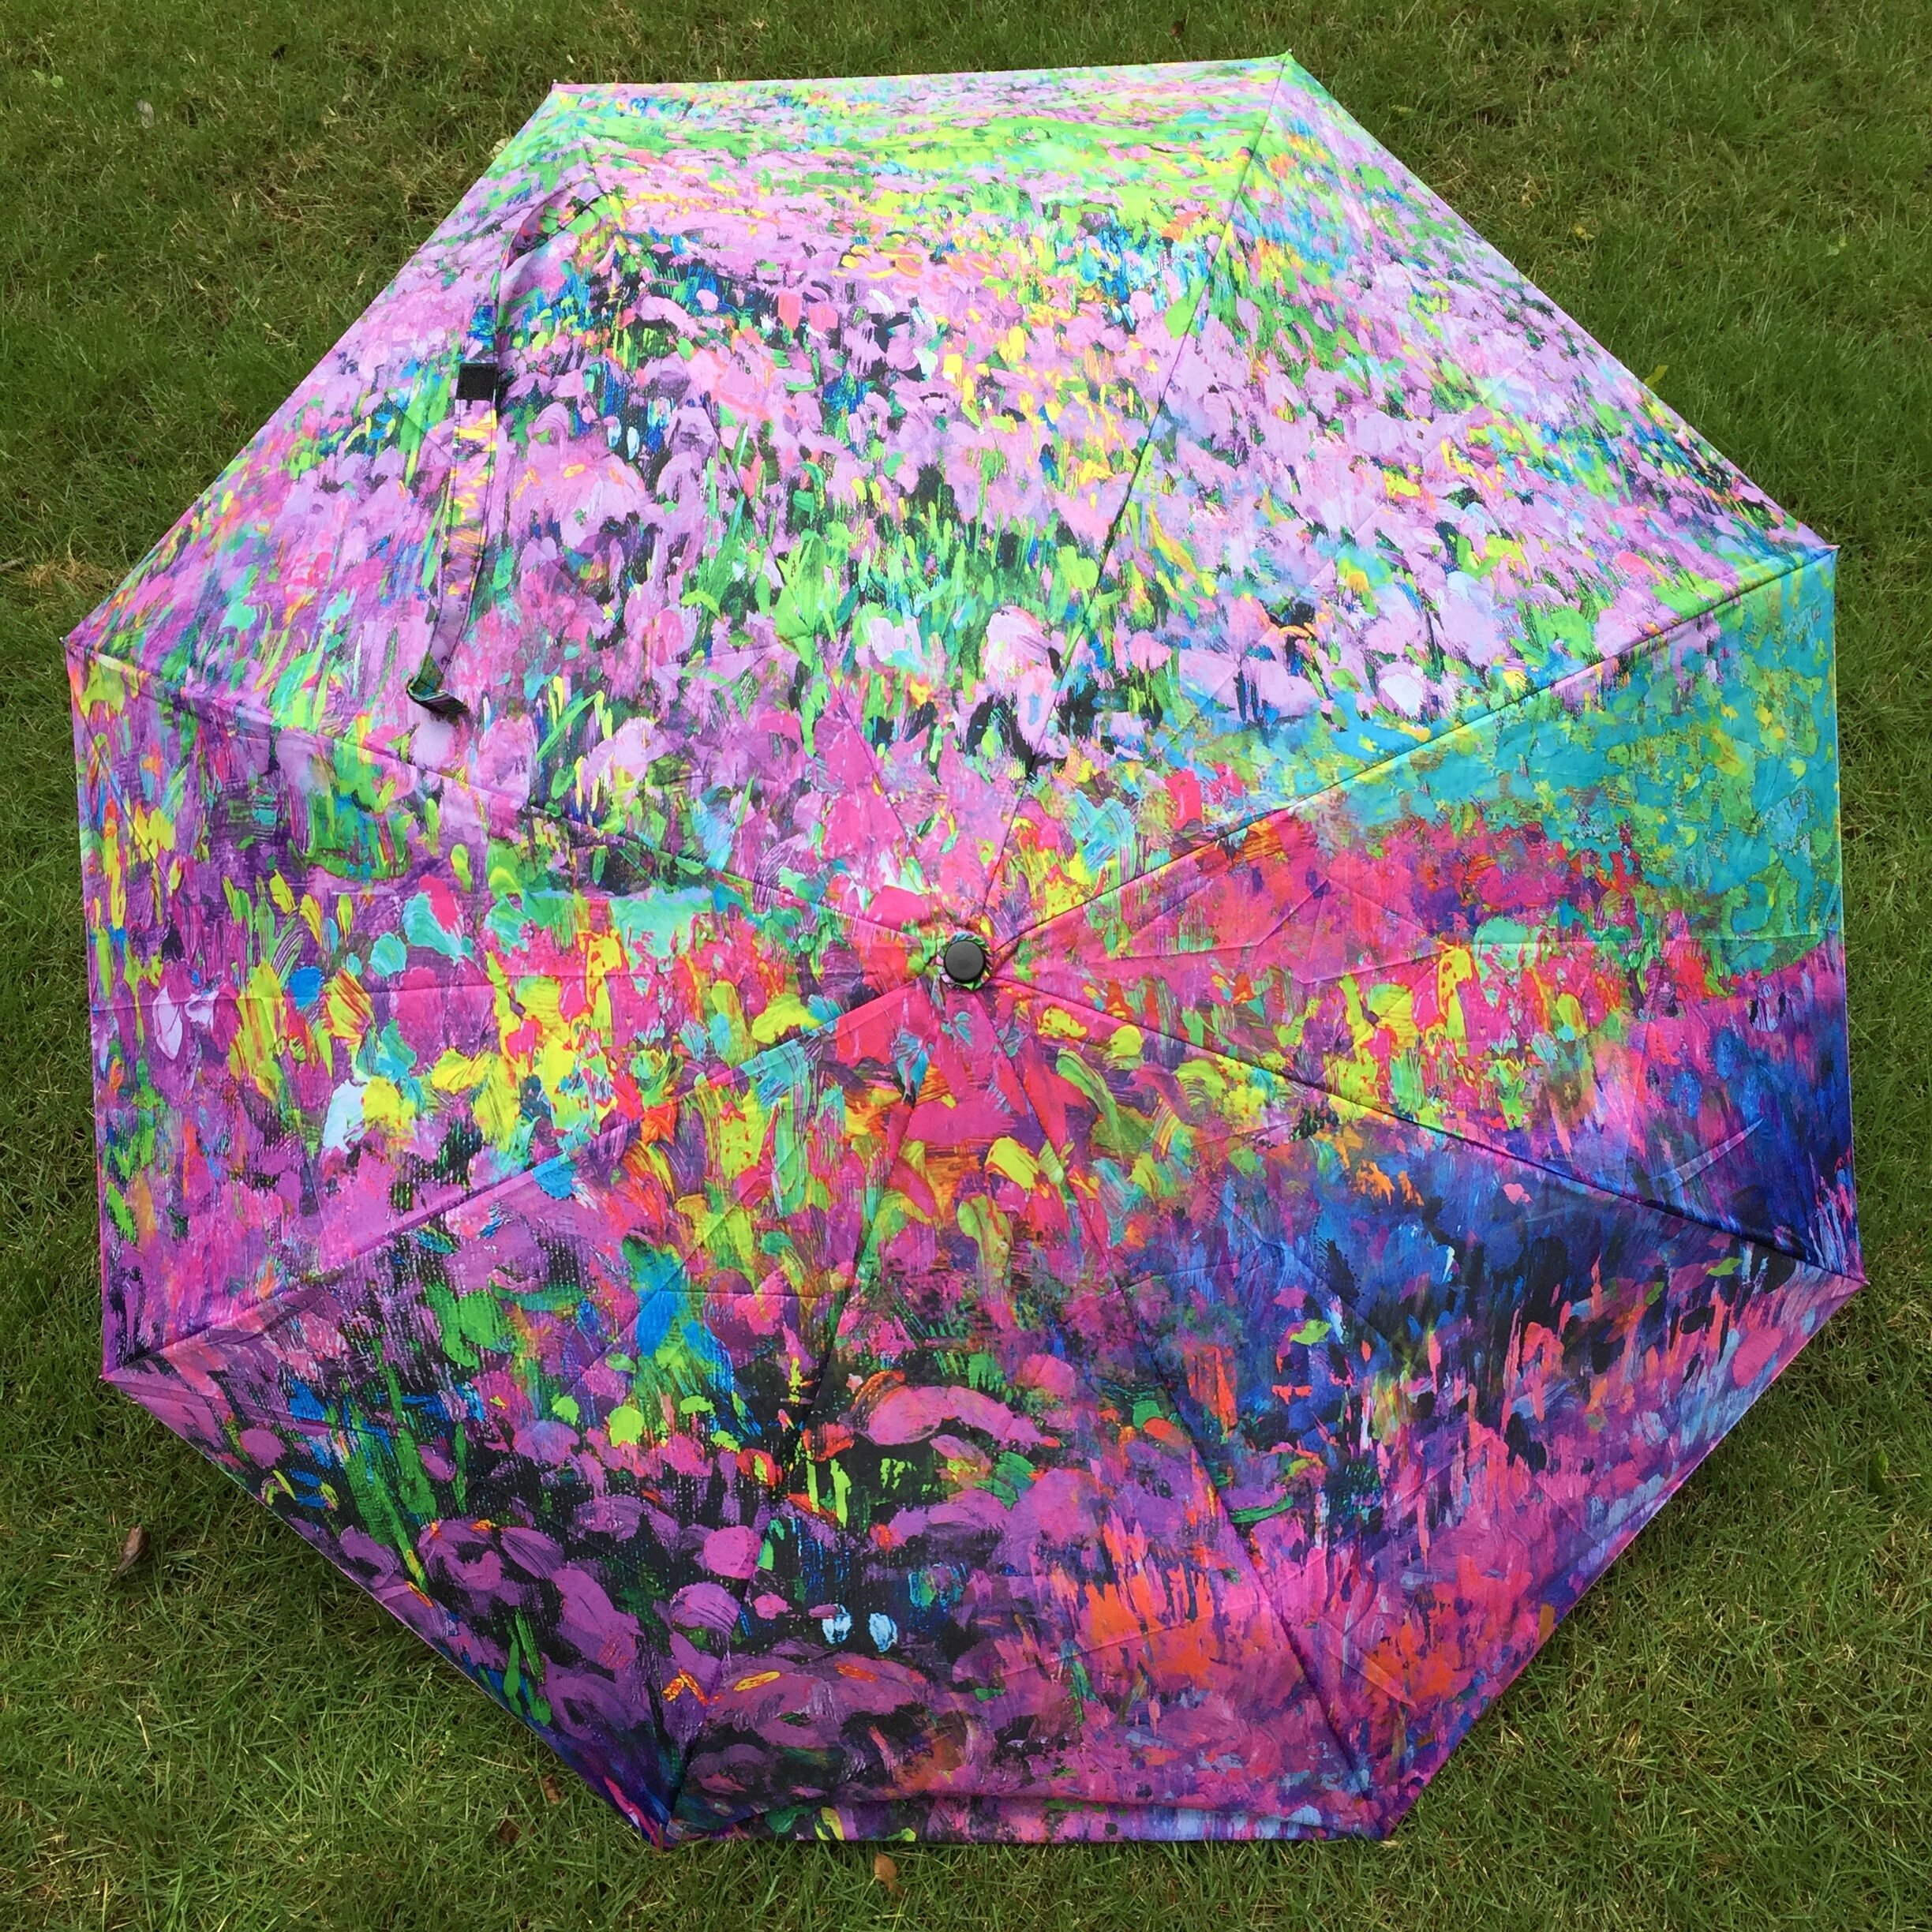 Glimsen-colorful-umbrella.jpg